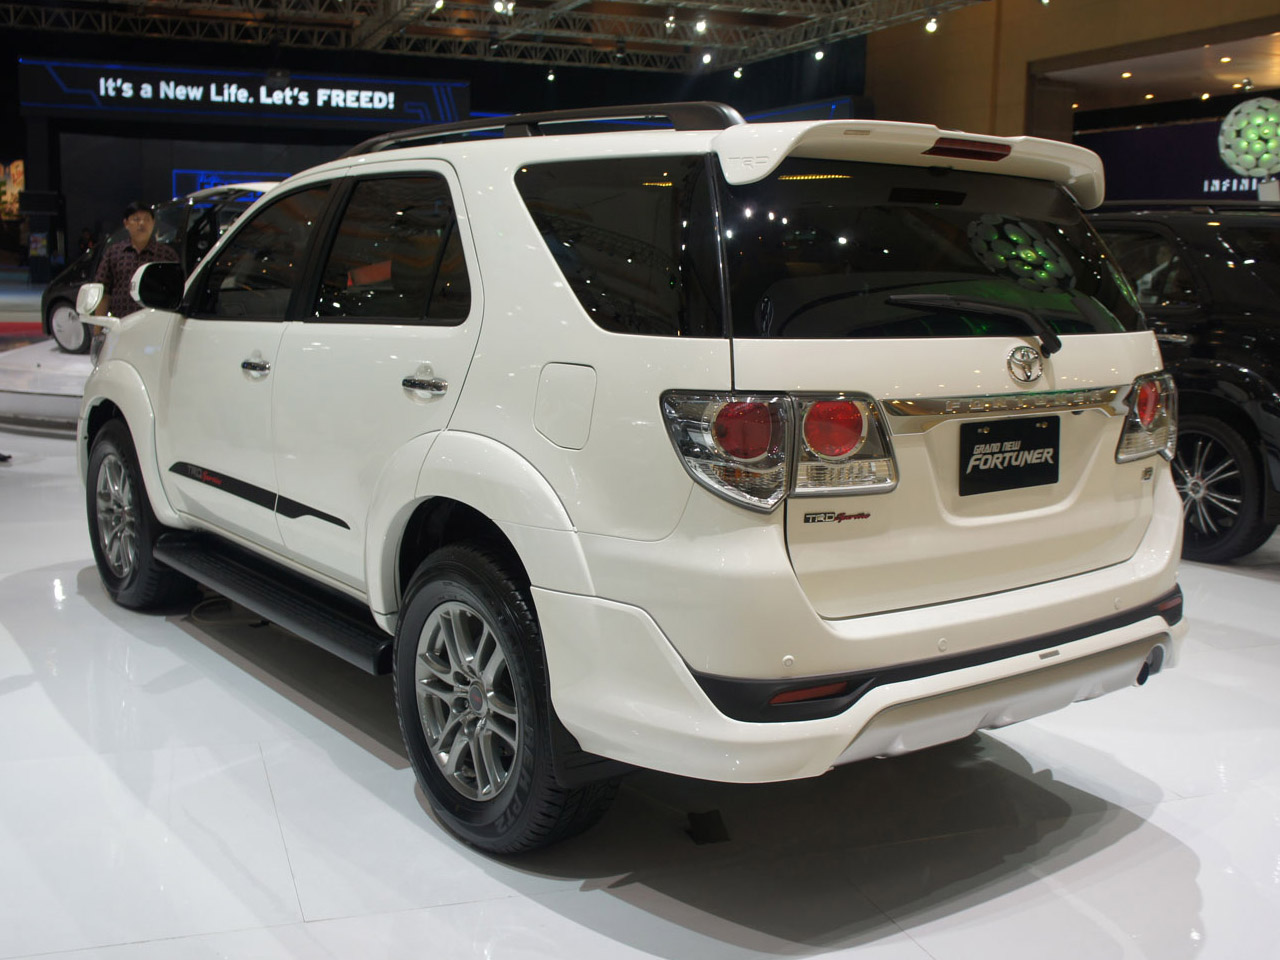 Best Toyota Fortuner Wallpapers part6 Best Cars HD Wallpapers 1280x960